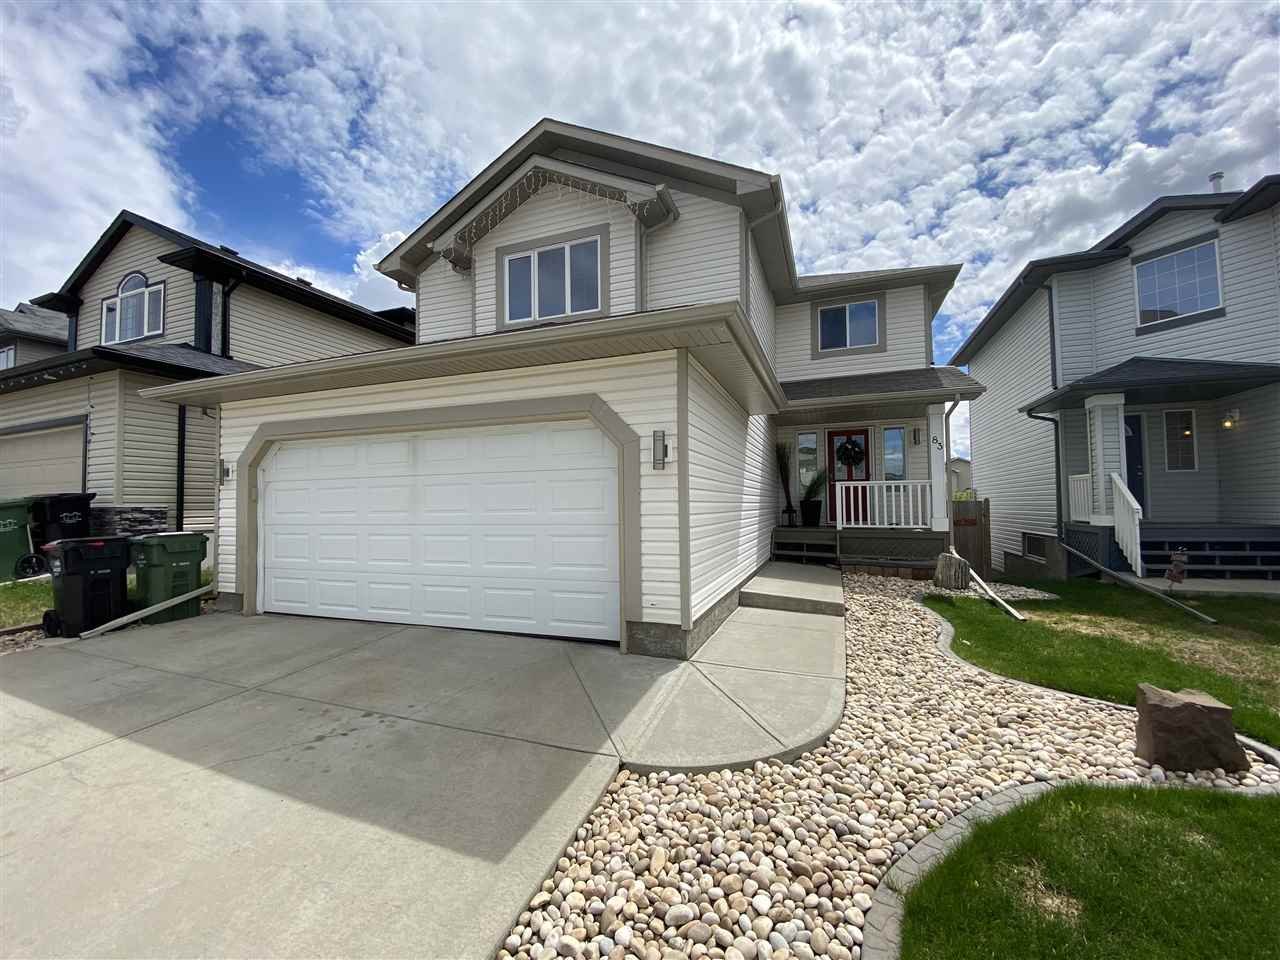 WALKOUT BASEMENT! BEAUTIFULLY RENOVATED KITCHEN! LARGE DECK! SOUTH FACING YARD! 24' DEEP GARAGE! GREAT FAMILY HOME! This 1833 sq ft (2524 TOTAL) 4 bed, 3.5 bath home BACKS A POND and has been nicely maintained! The main floor brings an open concept living / dining / kitchen, w/ a ton of windows, ample natural light, newer laminate flooring, S/S appliances, granite countertops, updated backsplash, fresh paint, corner pantry & gas fireplace! Upstairs you find a large BONUS ROOM, 3 good sized bedrooms, including the master bed w/ 4 pce en-suite & w-in closet. The basement is fully finished, with a large 4th bedroom, rec room for movie night, and 4 pce bath, & WALKOUT access to your huge yard! Good storage space, and nice flooring & drop ceiling. The yard is spectacular! Large deck for entertaining, w/ great space for the kids to play, summer bonfires, and great views with no direct neighbours behind! Located on a quiet crescent, call this gem home today!